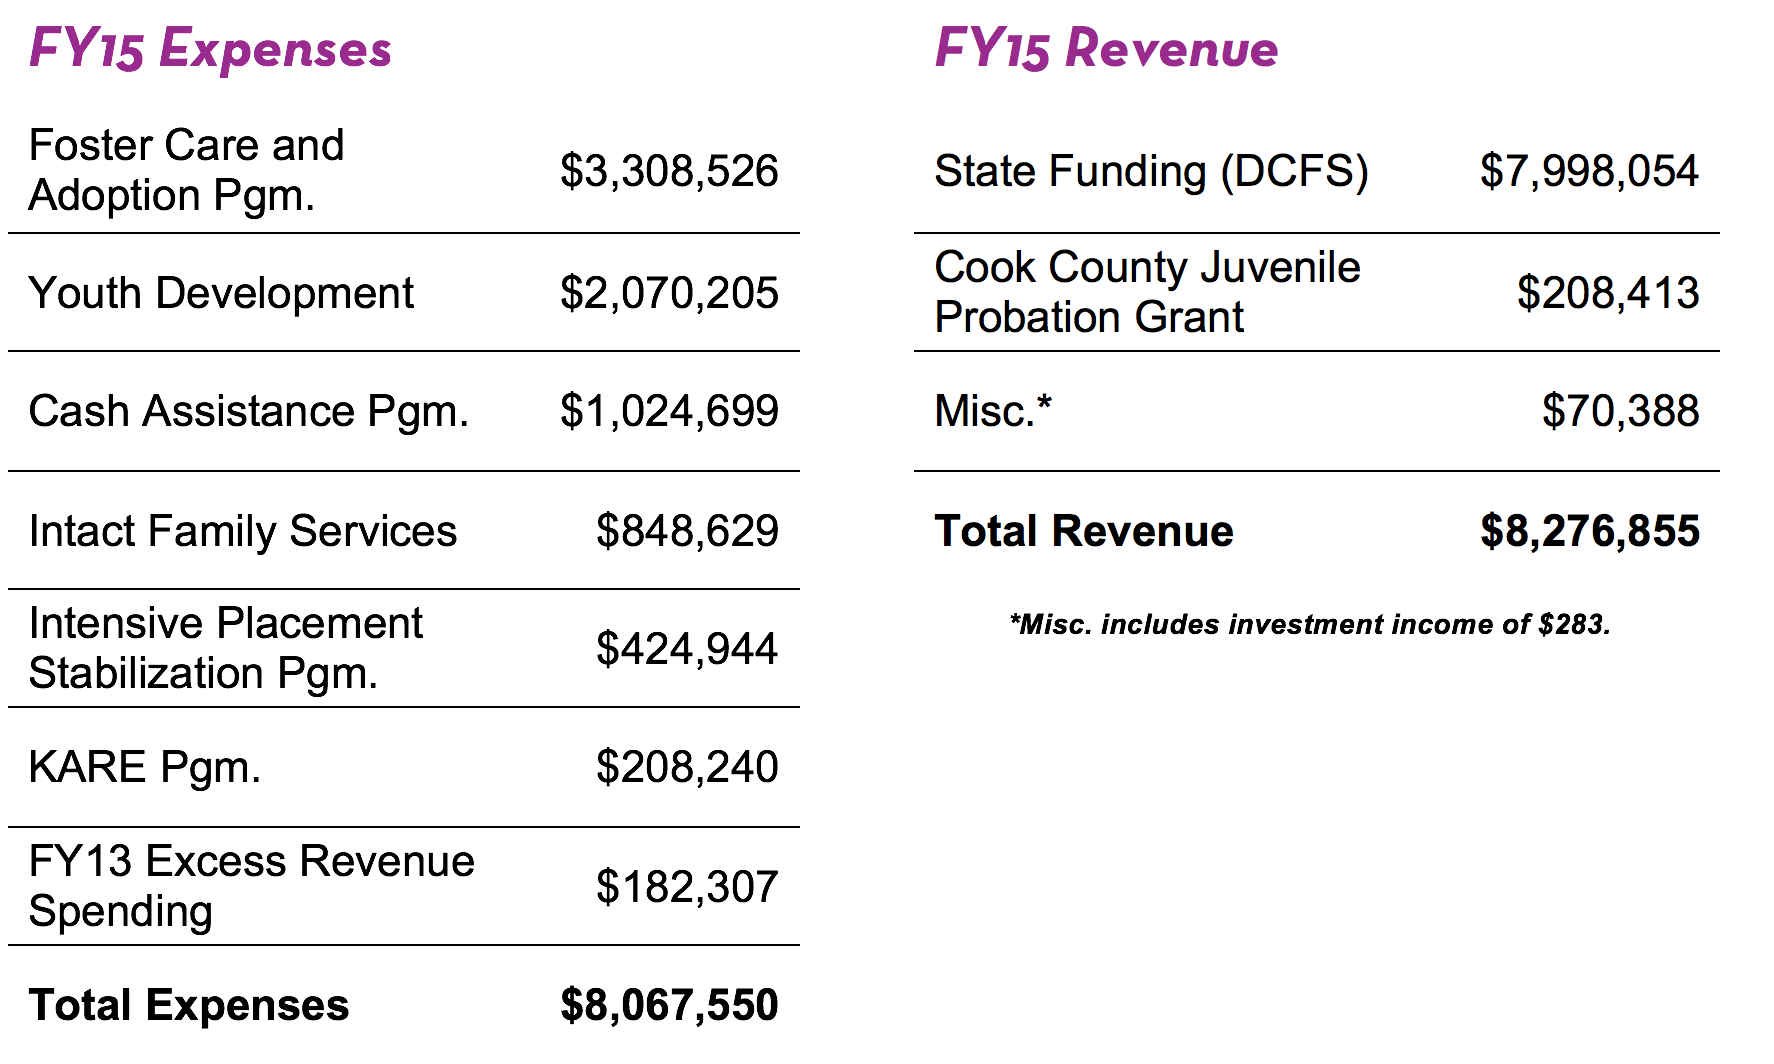 Kaleidoscope FY15 Expenses and Revenue